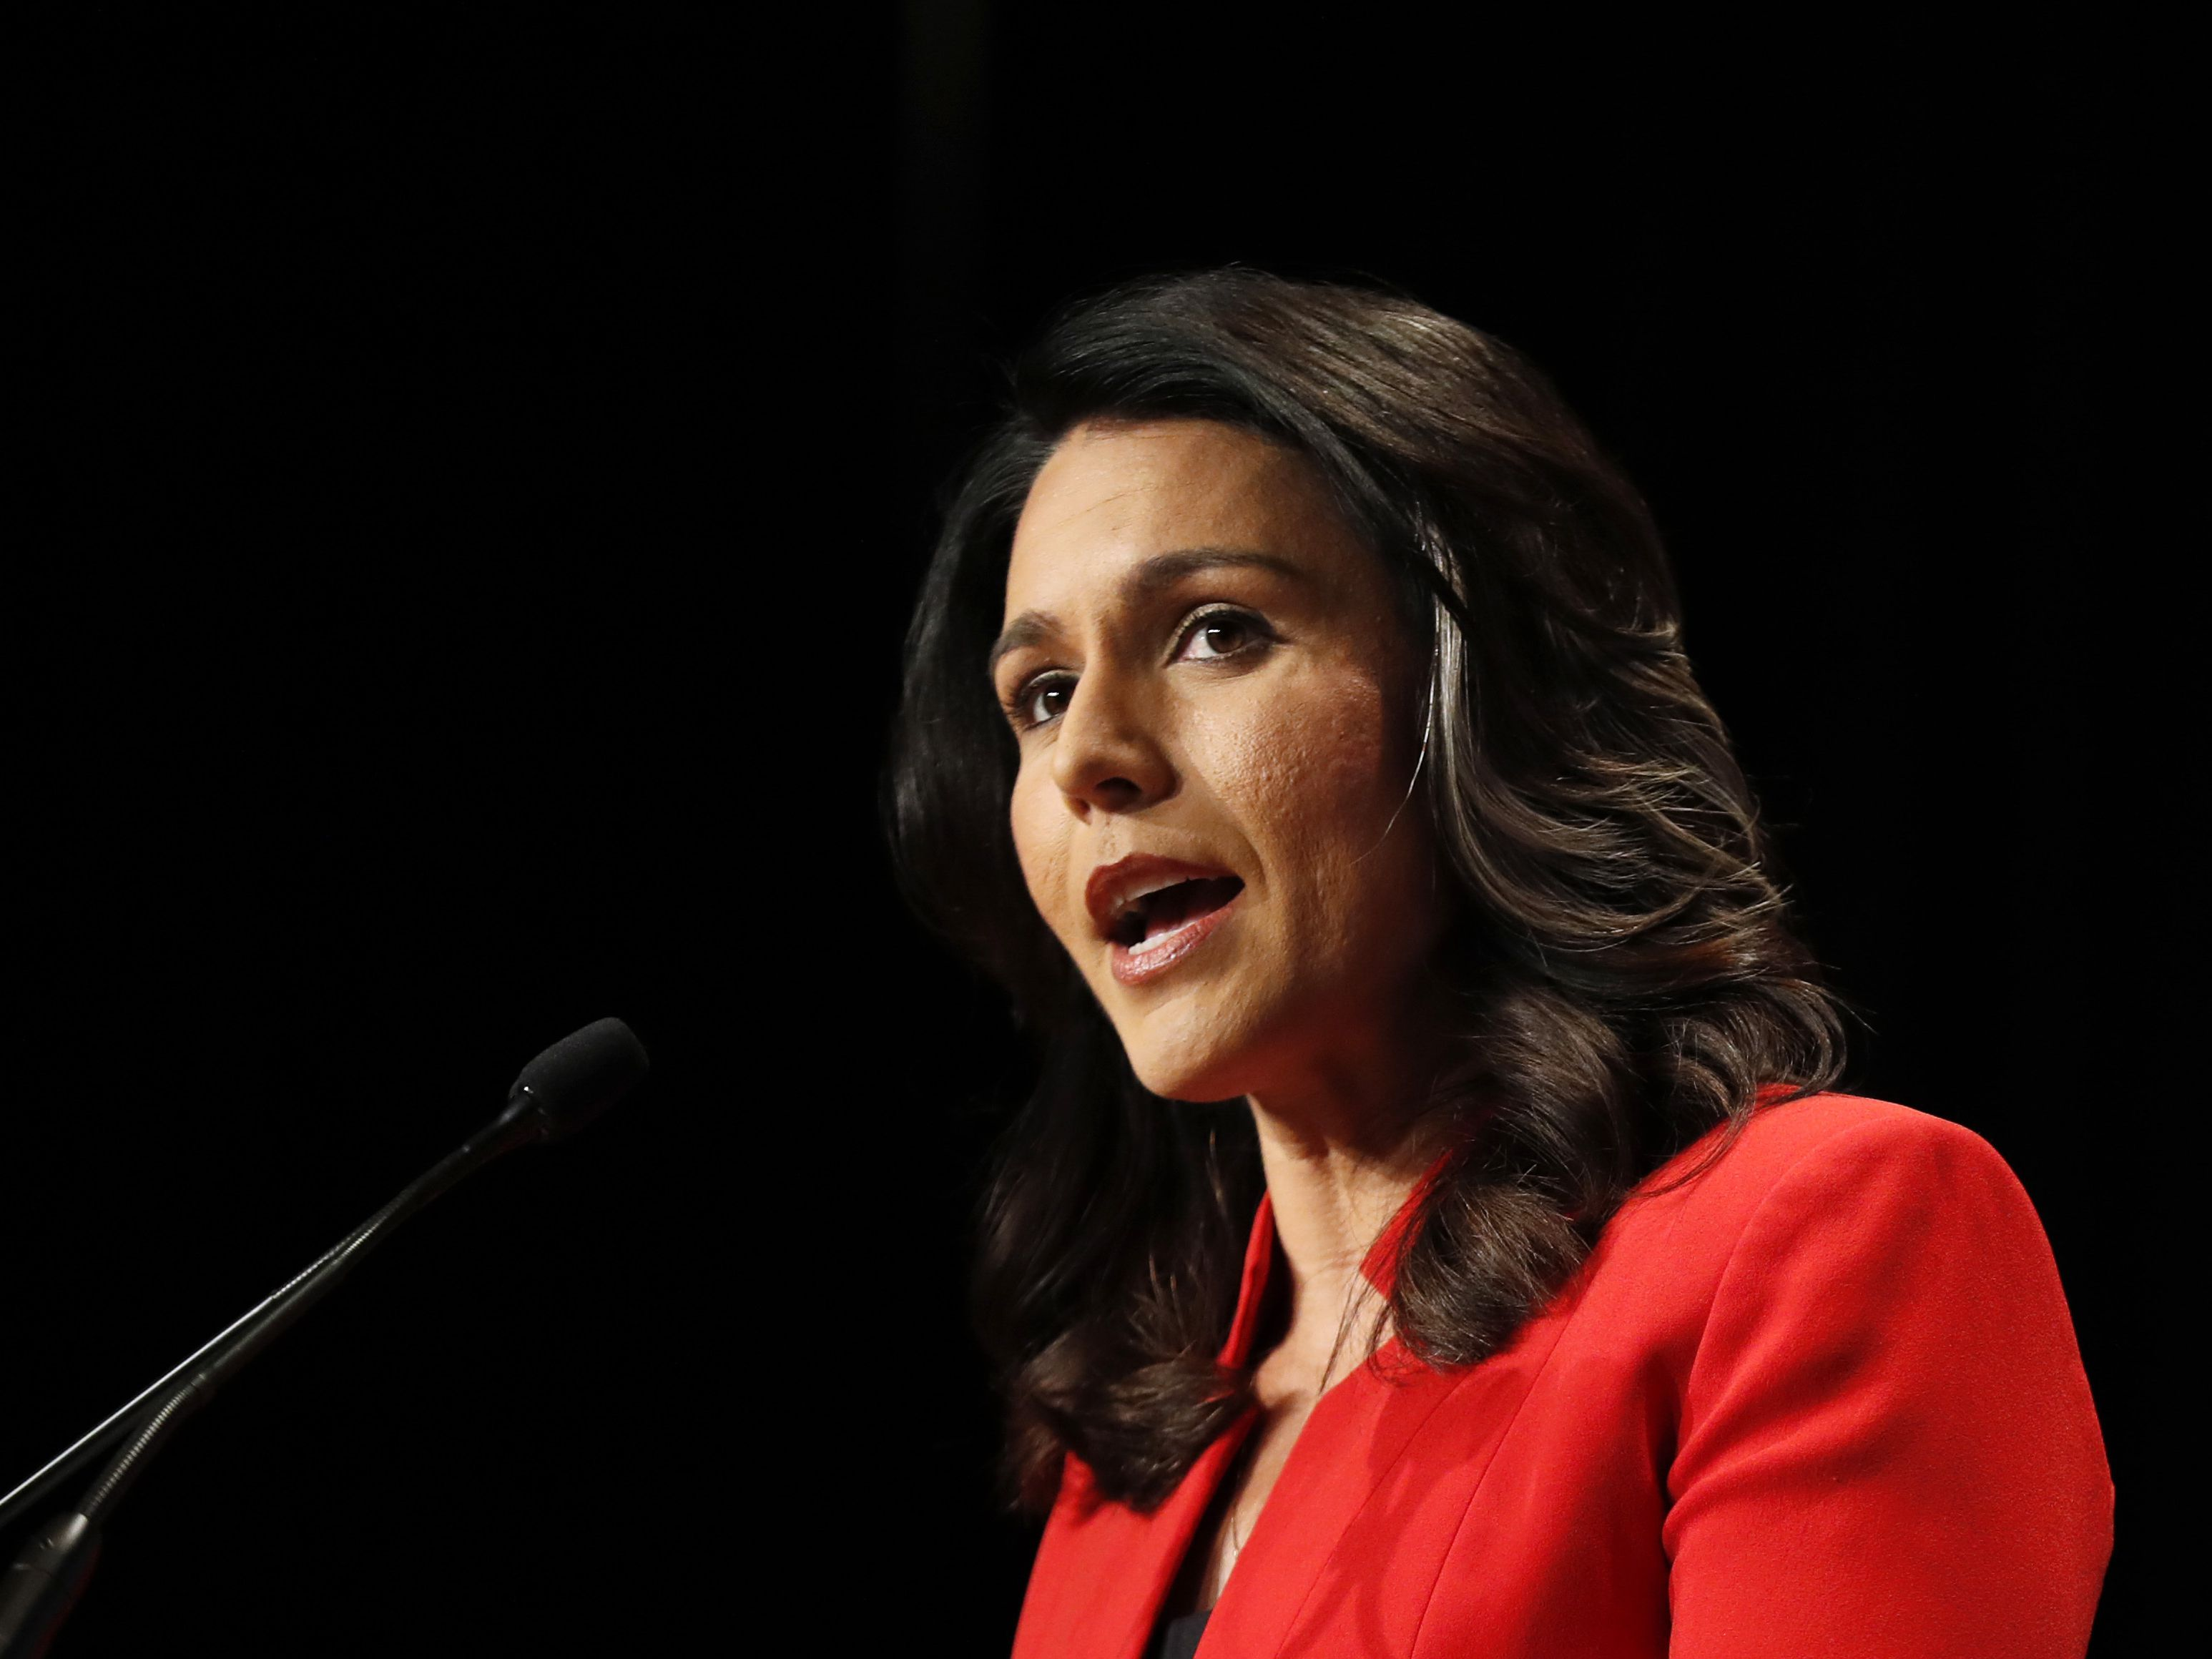 Gabbard's presidential campaign fundraising numbers show quarterly dip